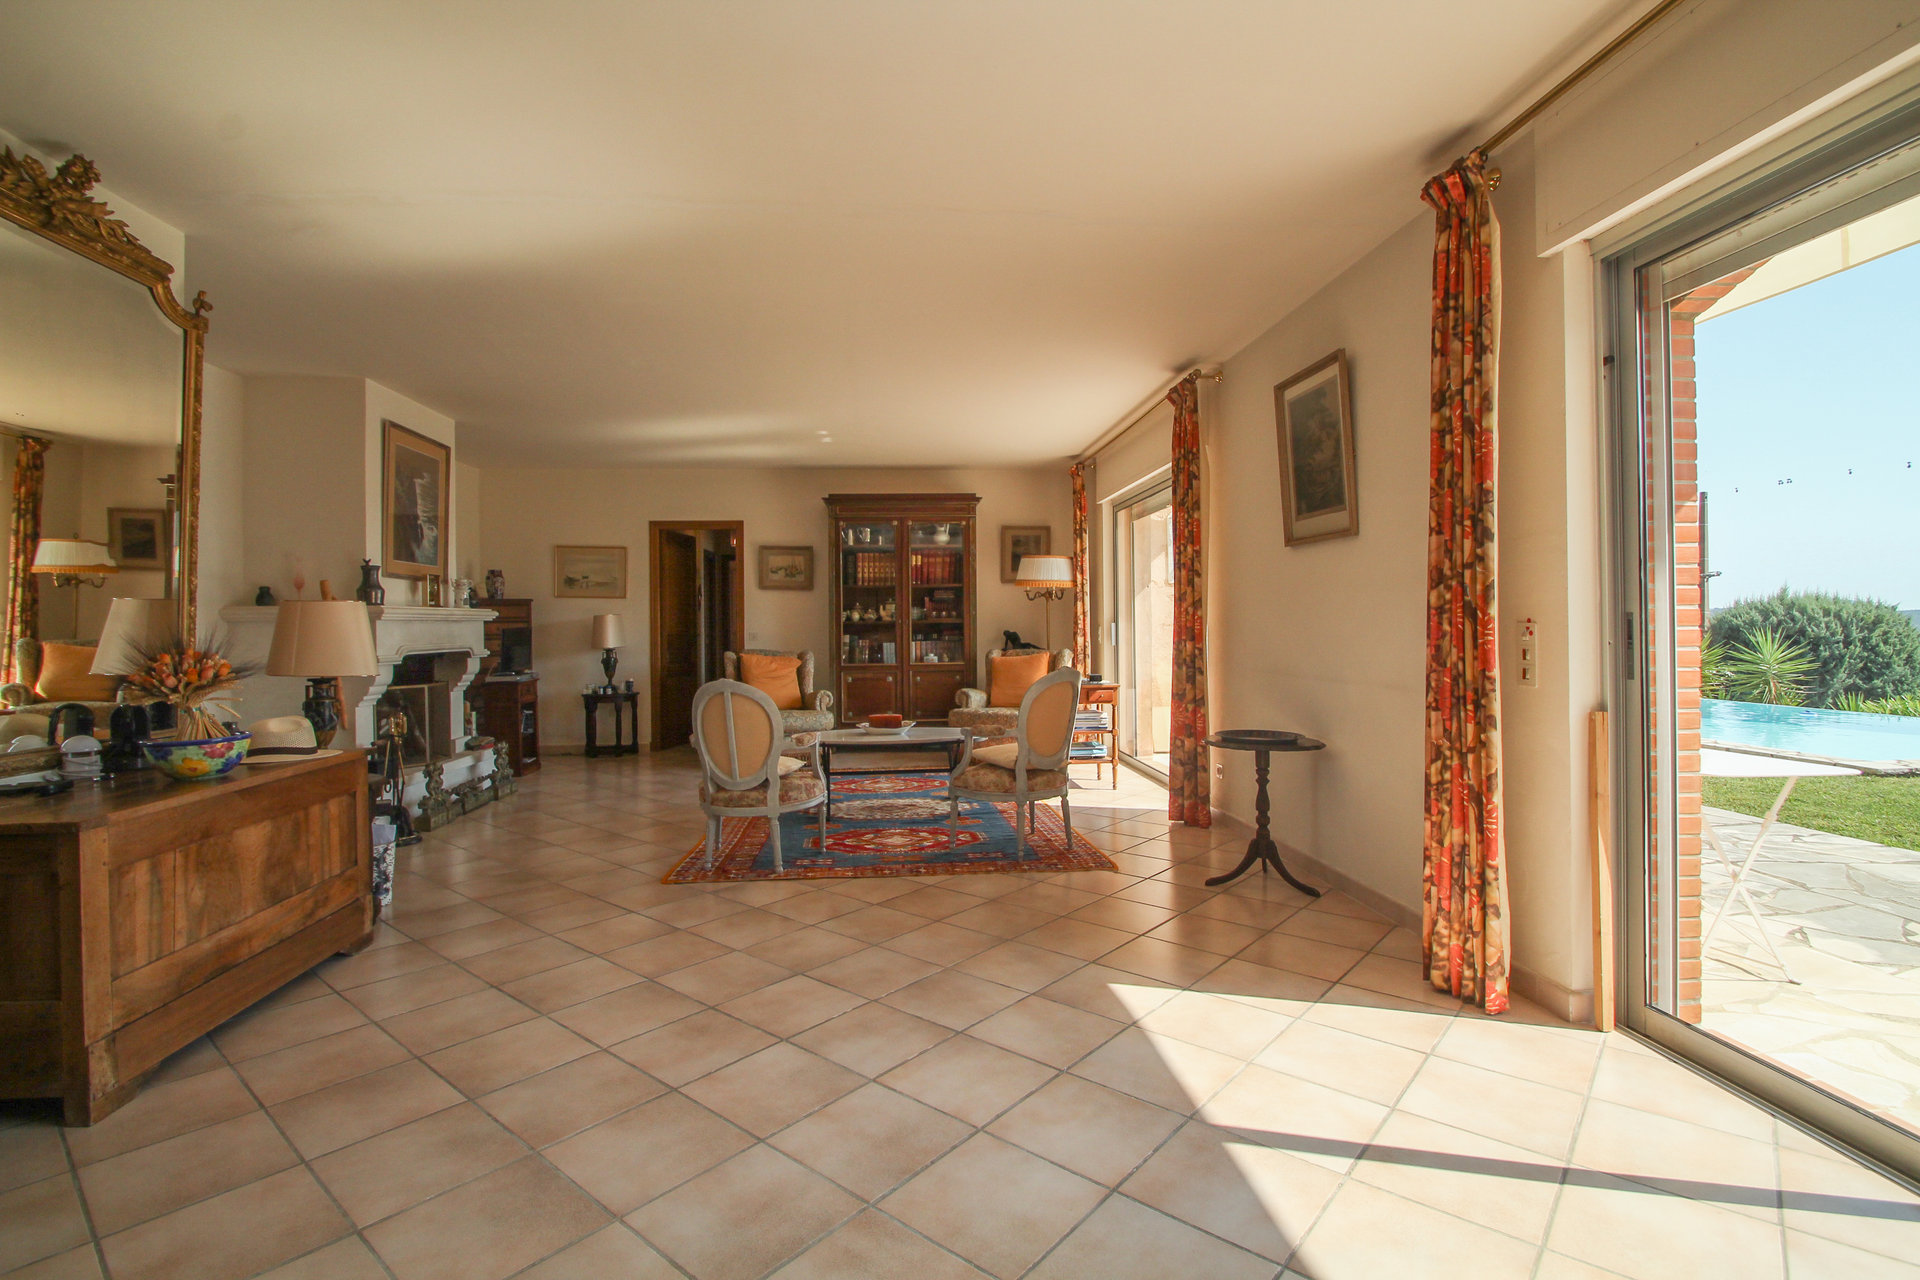 Pays de Fayence villa 195m² with stunning views, on a plot of 2500m²